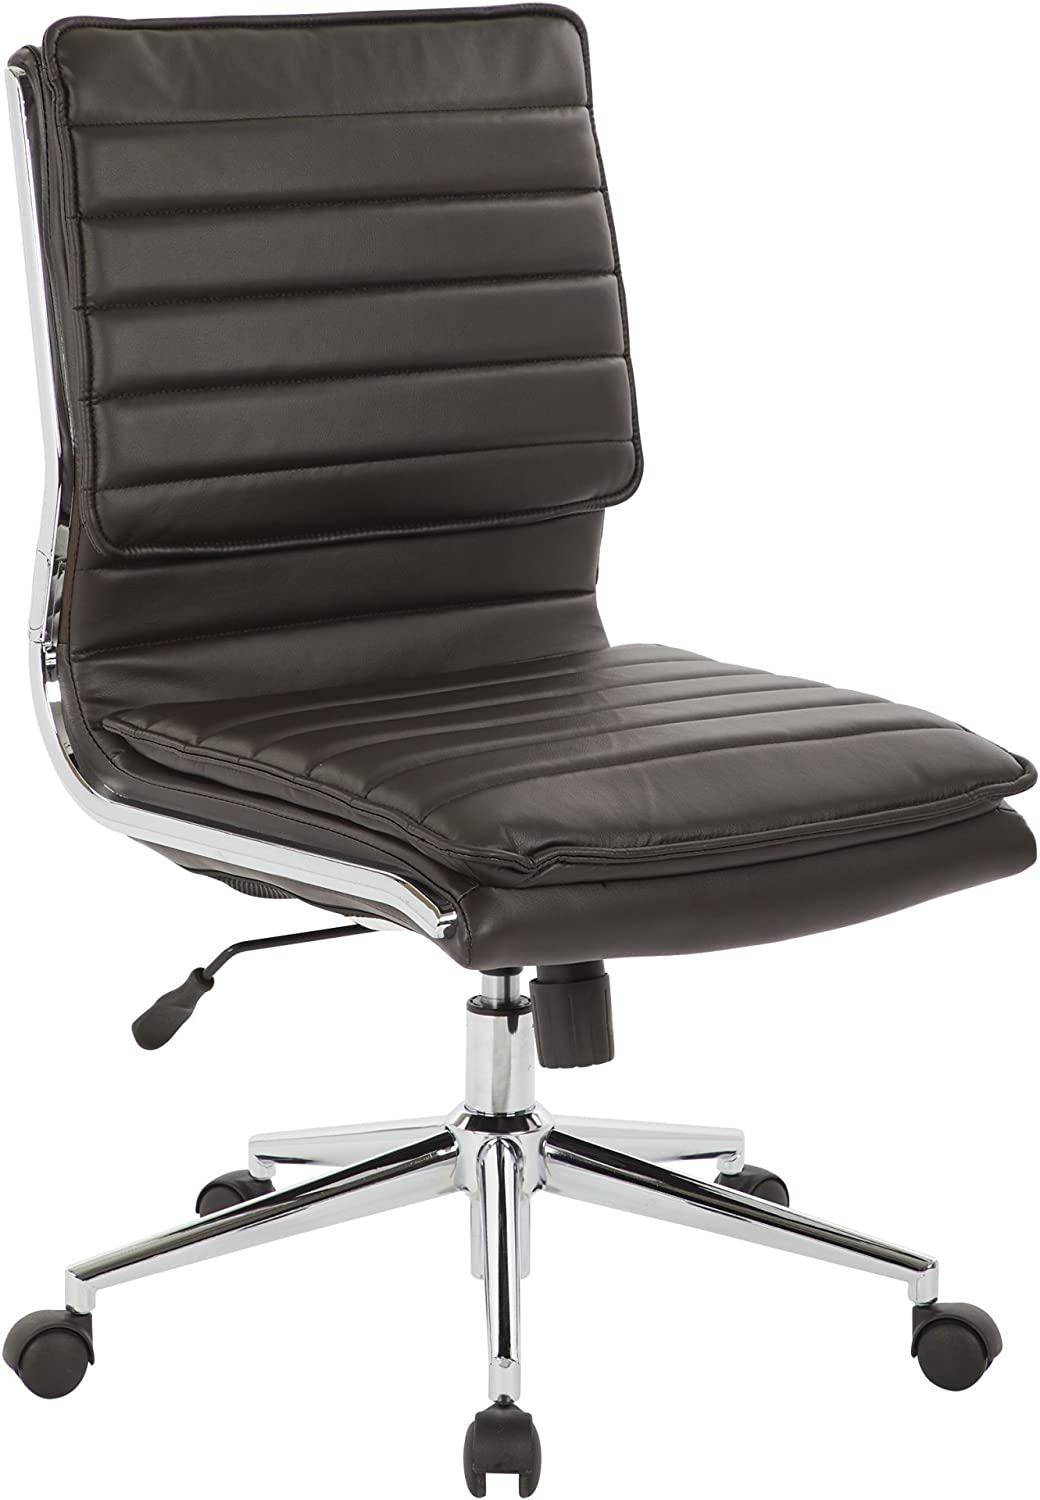 Office Star Faux Leather Armless Mid Back Managers Chair with Chrome Base, Espresso